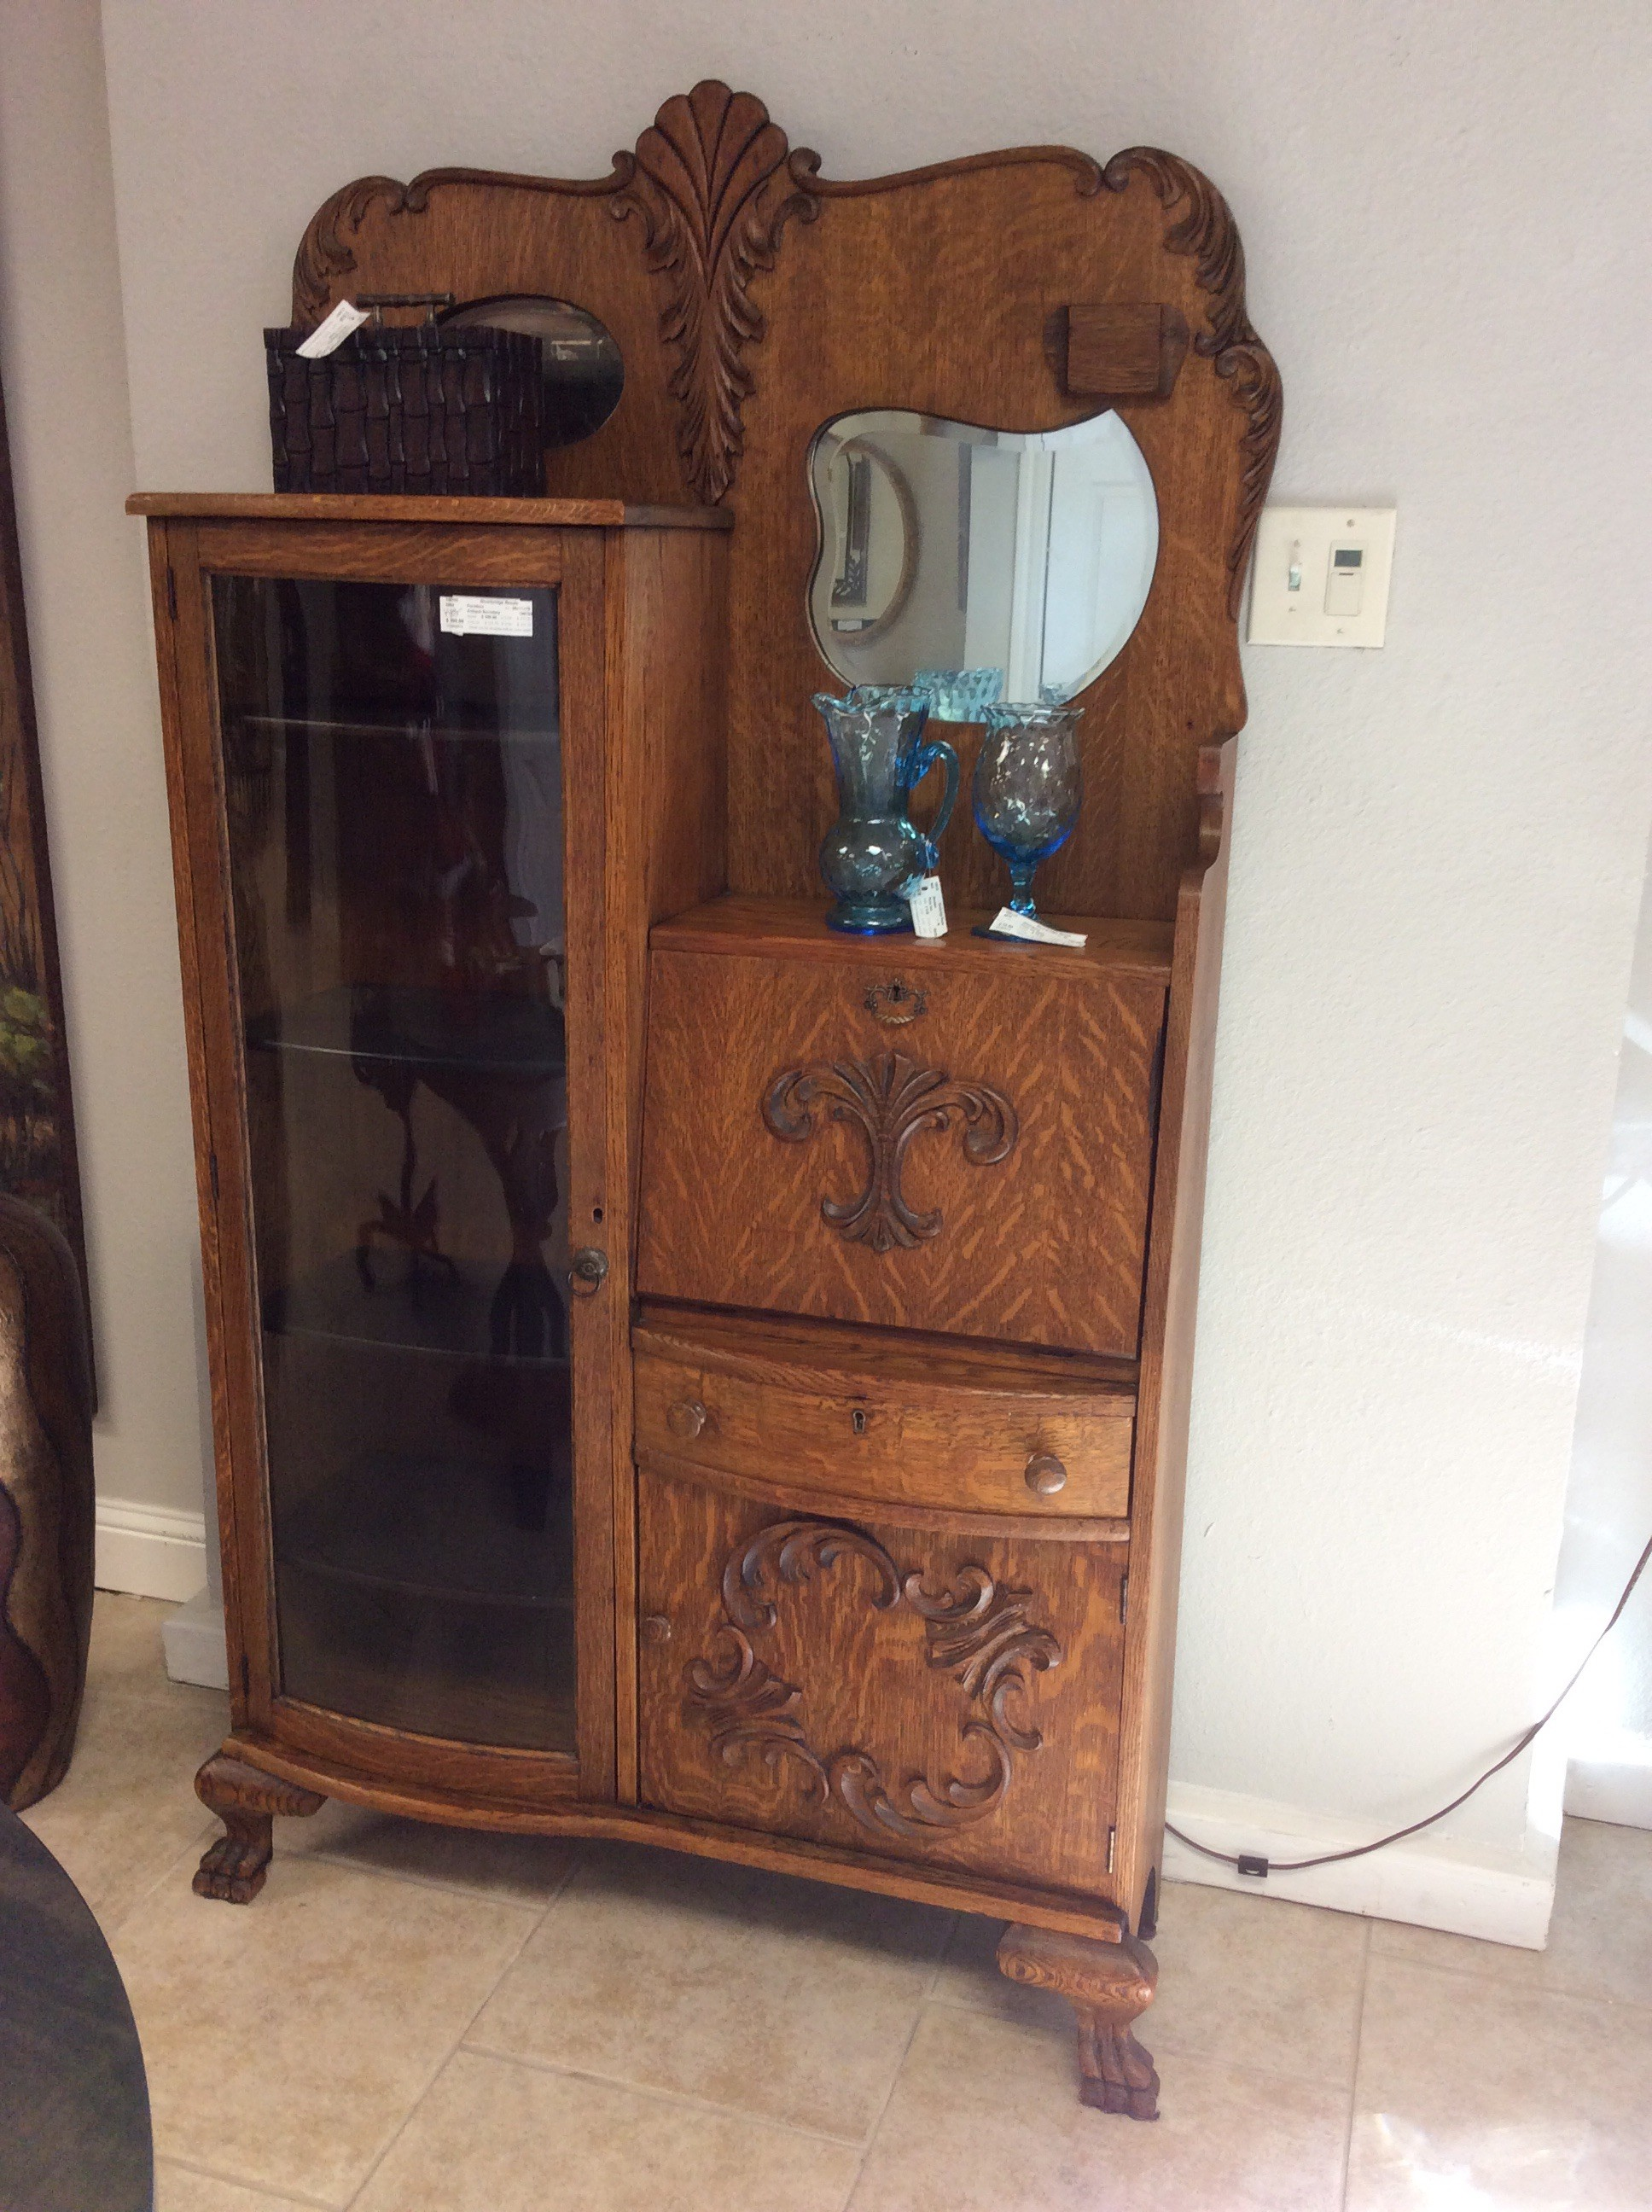 This is a lovely old piece!  It doubles as both a curio cabinet and a secretary desk. The curio has 4 adjustable shelves. The secretary features a drawer, a lovely carved wood cabinet on the bottom, and the desk top has several cubbies and a tiny drawer. The top has 2 mirrors and there is a key.